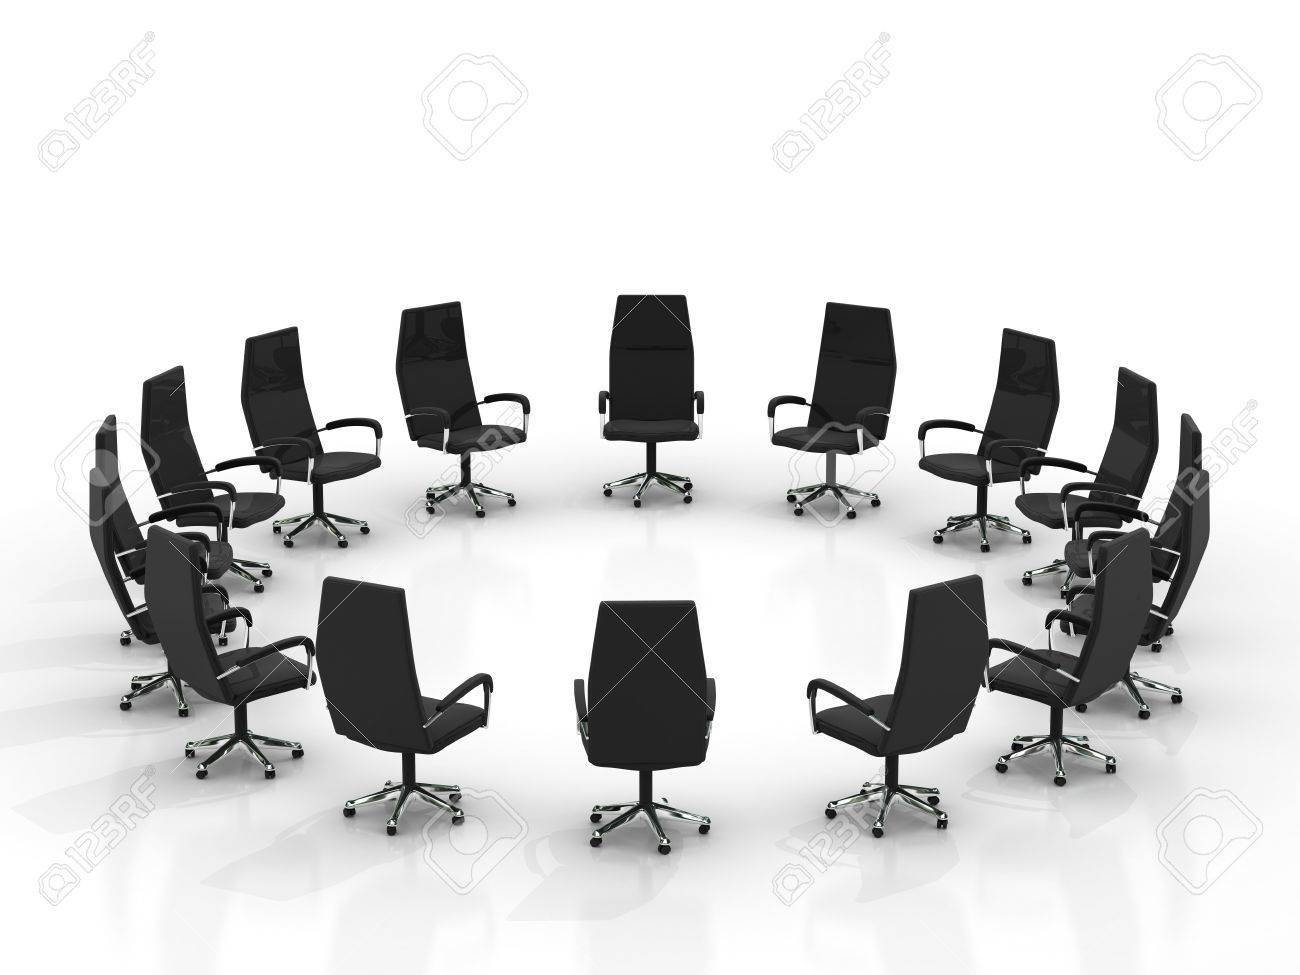 chairs arranging round large group isolated on white background Stock Photo - 8548164